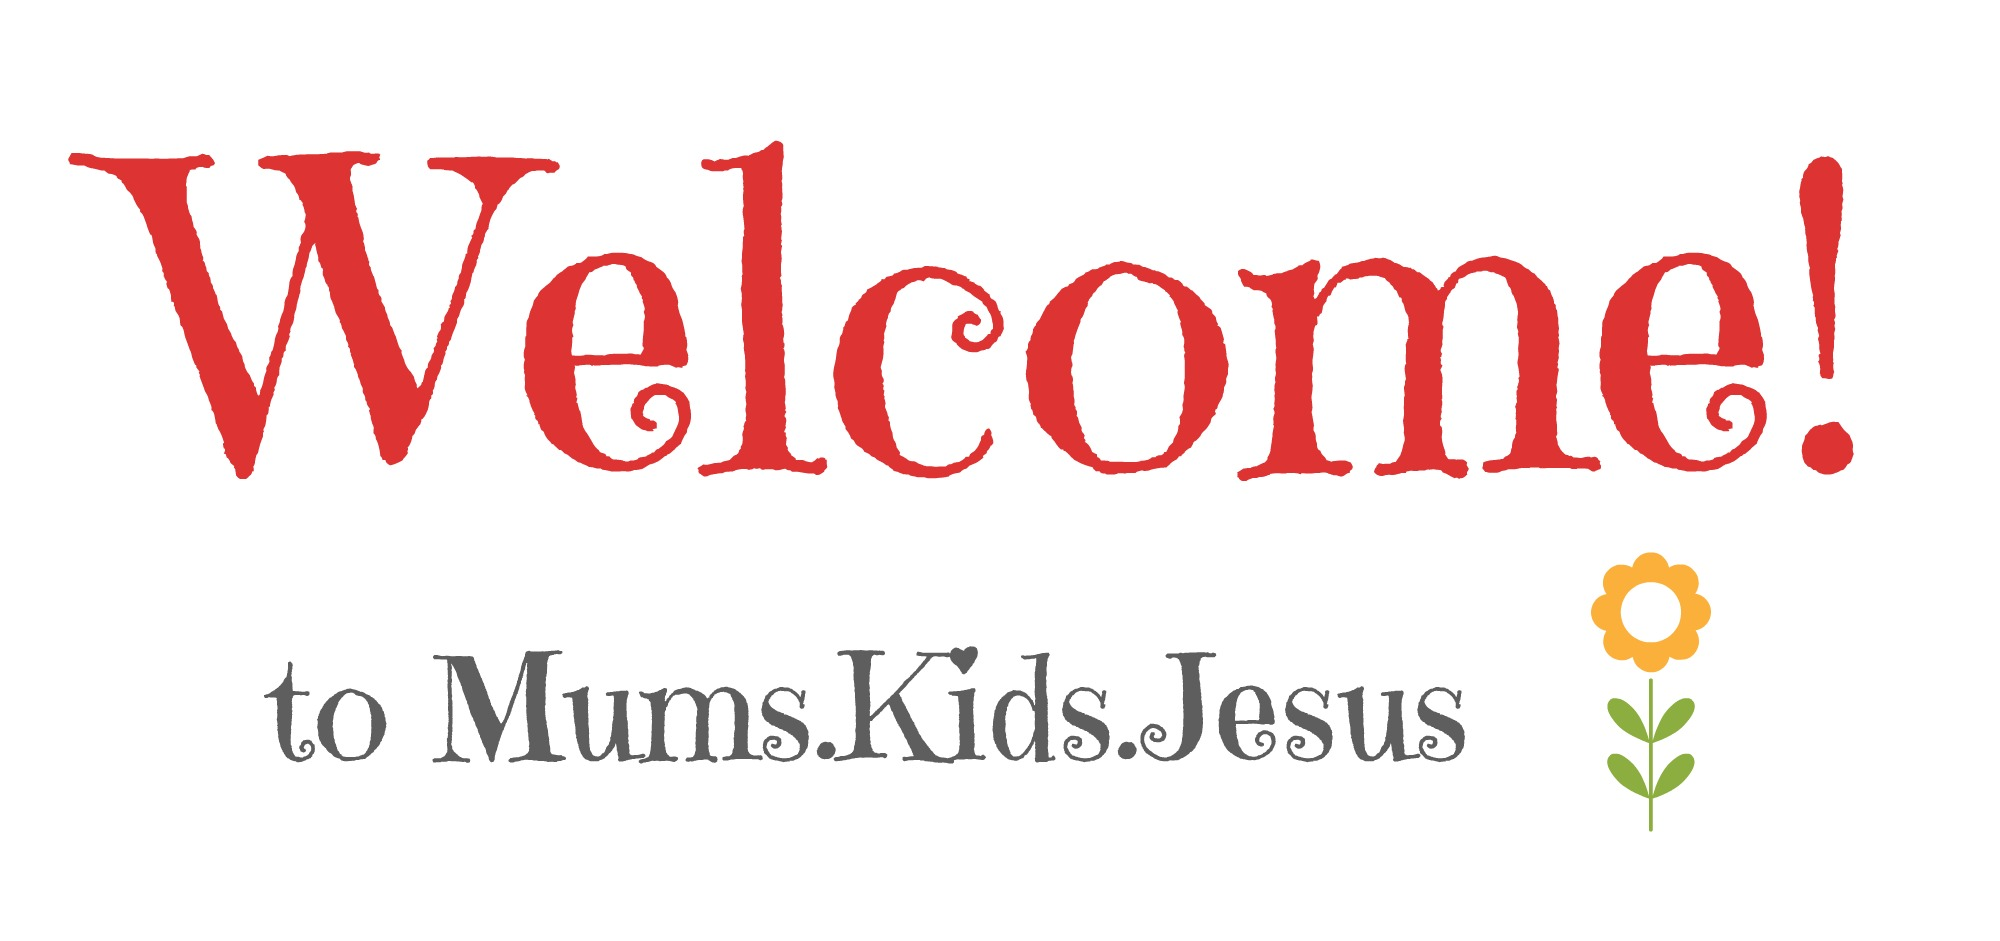 Welcome to Mums.Kids.Jesus!